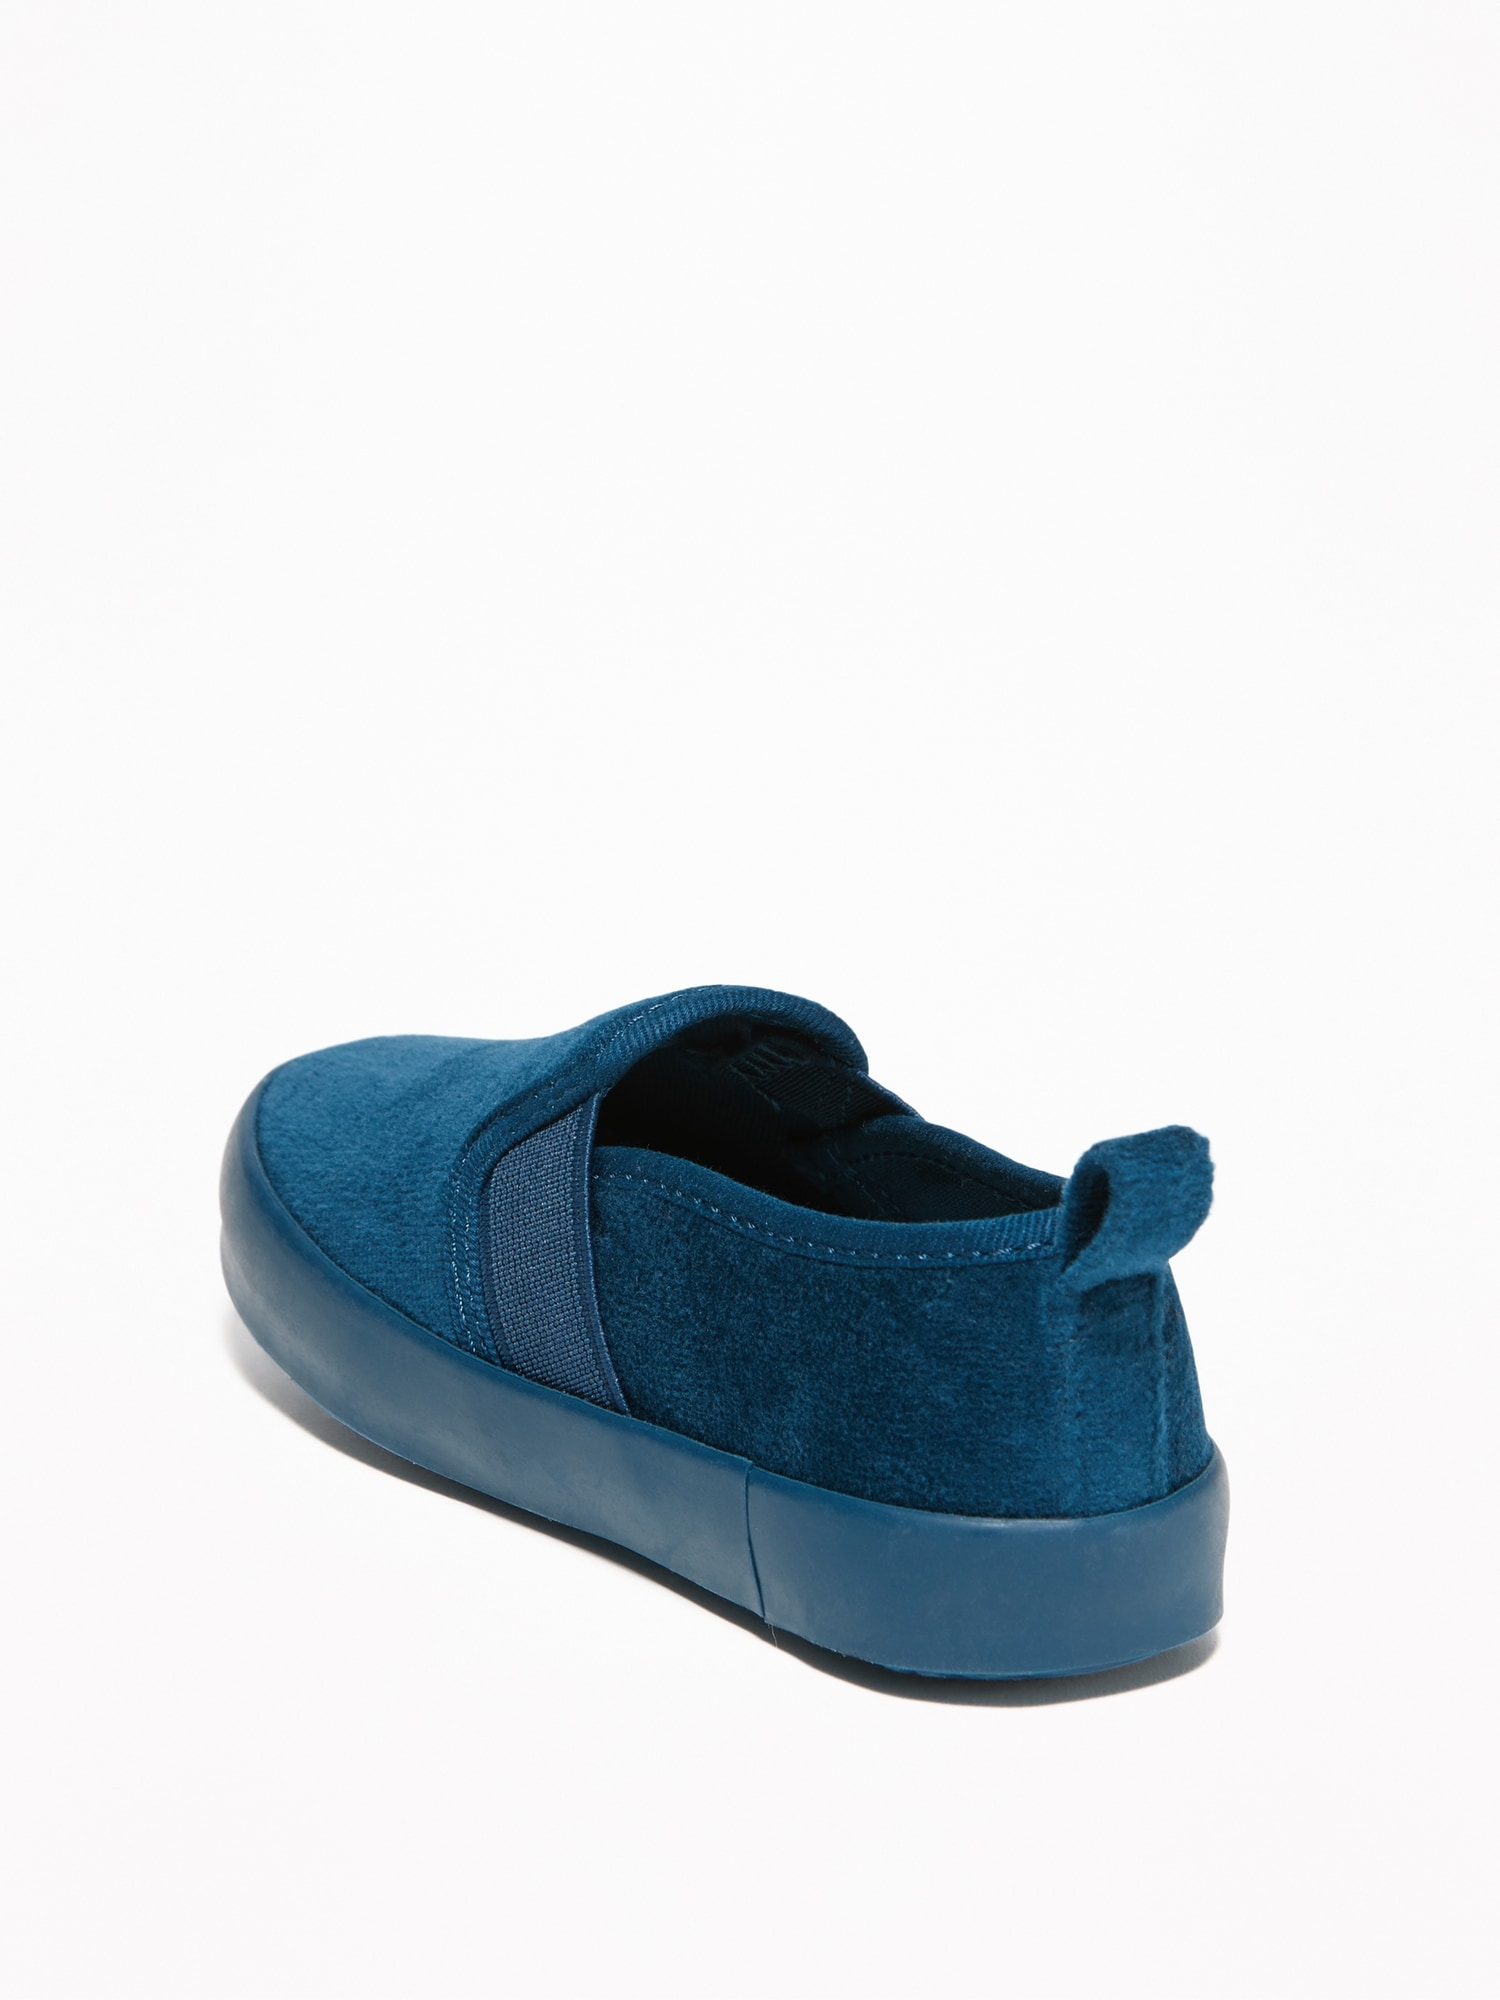 47513435550 Velvet Slip-Ons for Toddler Boys